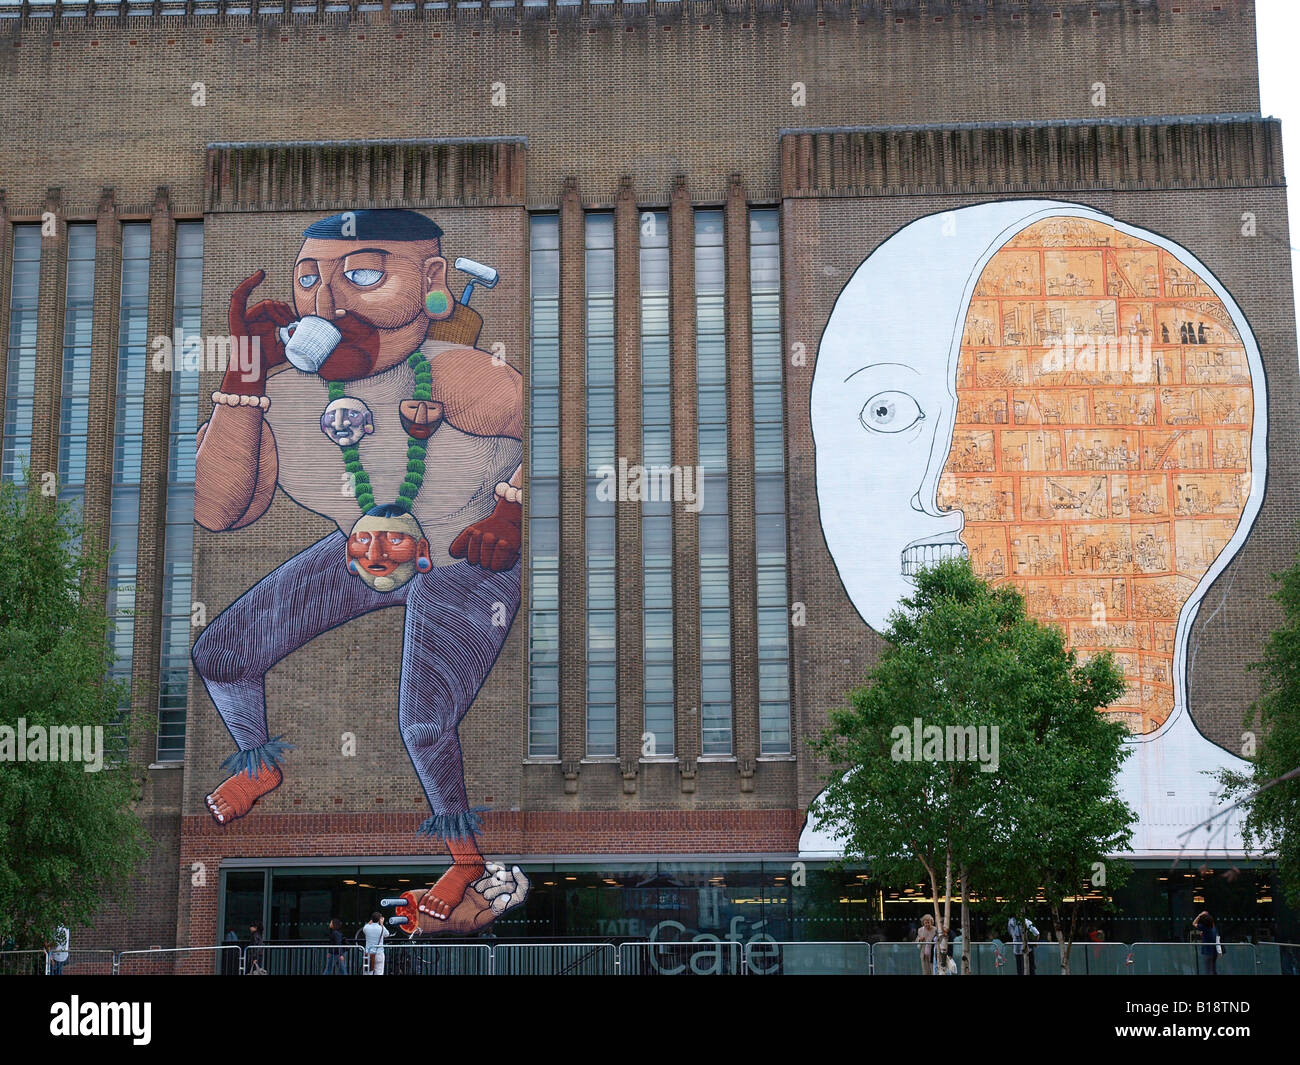 Graffiti art works by Nunca and Blu painted on the Tate Modern London - Stock Image